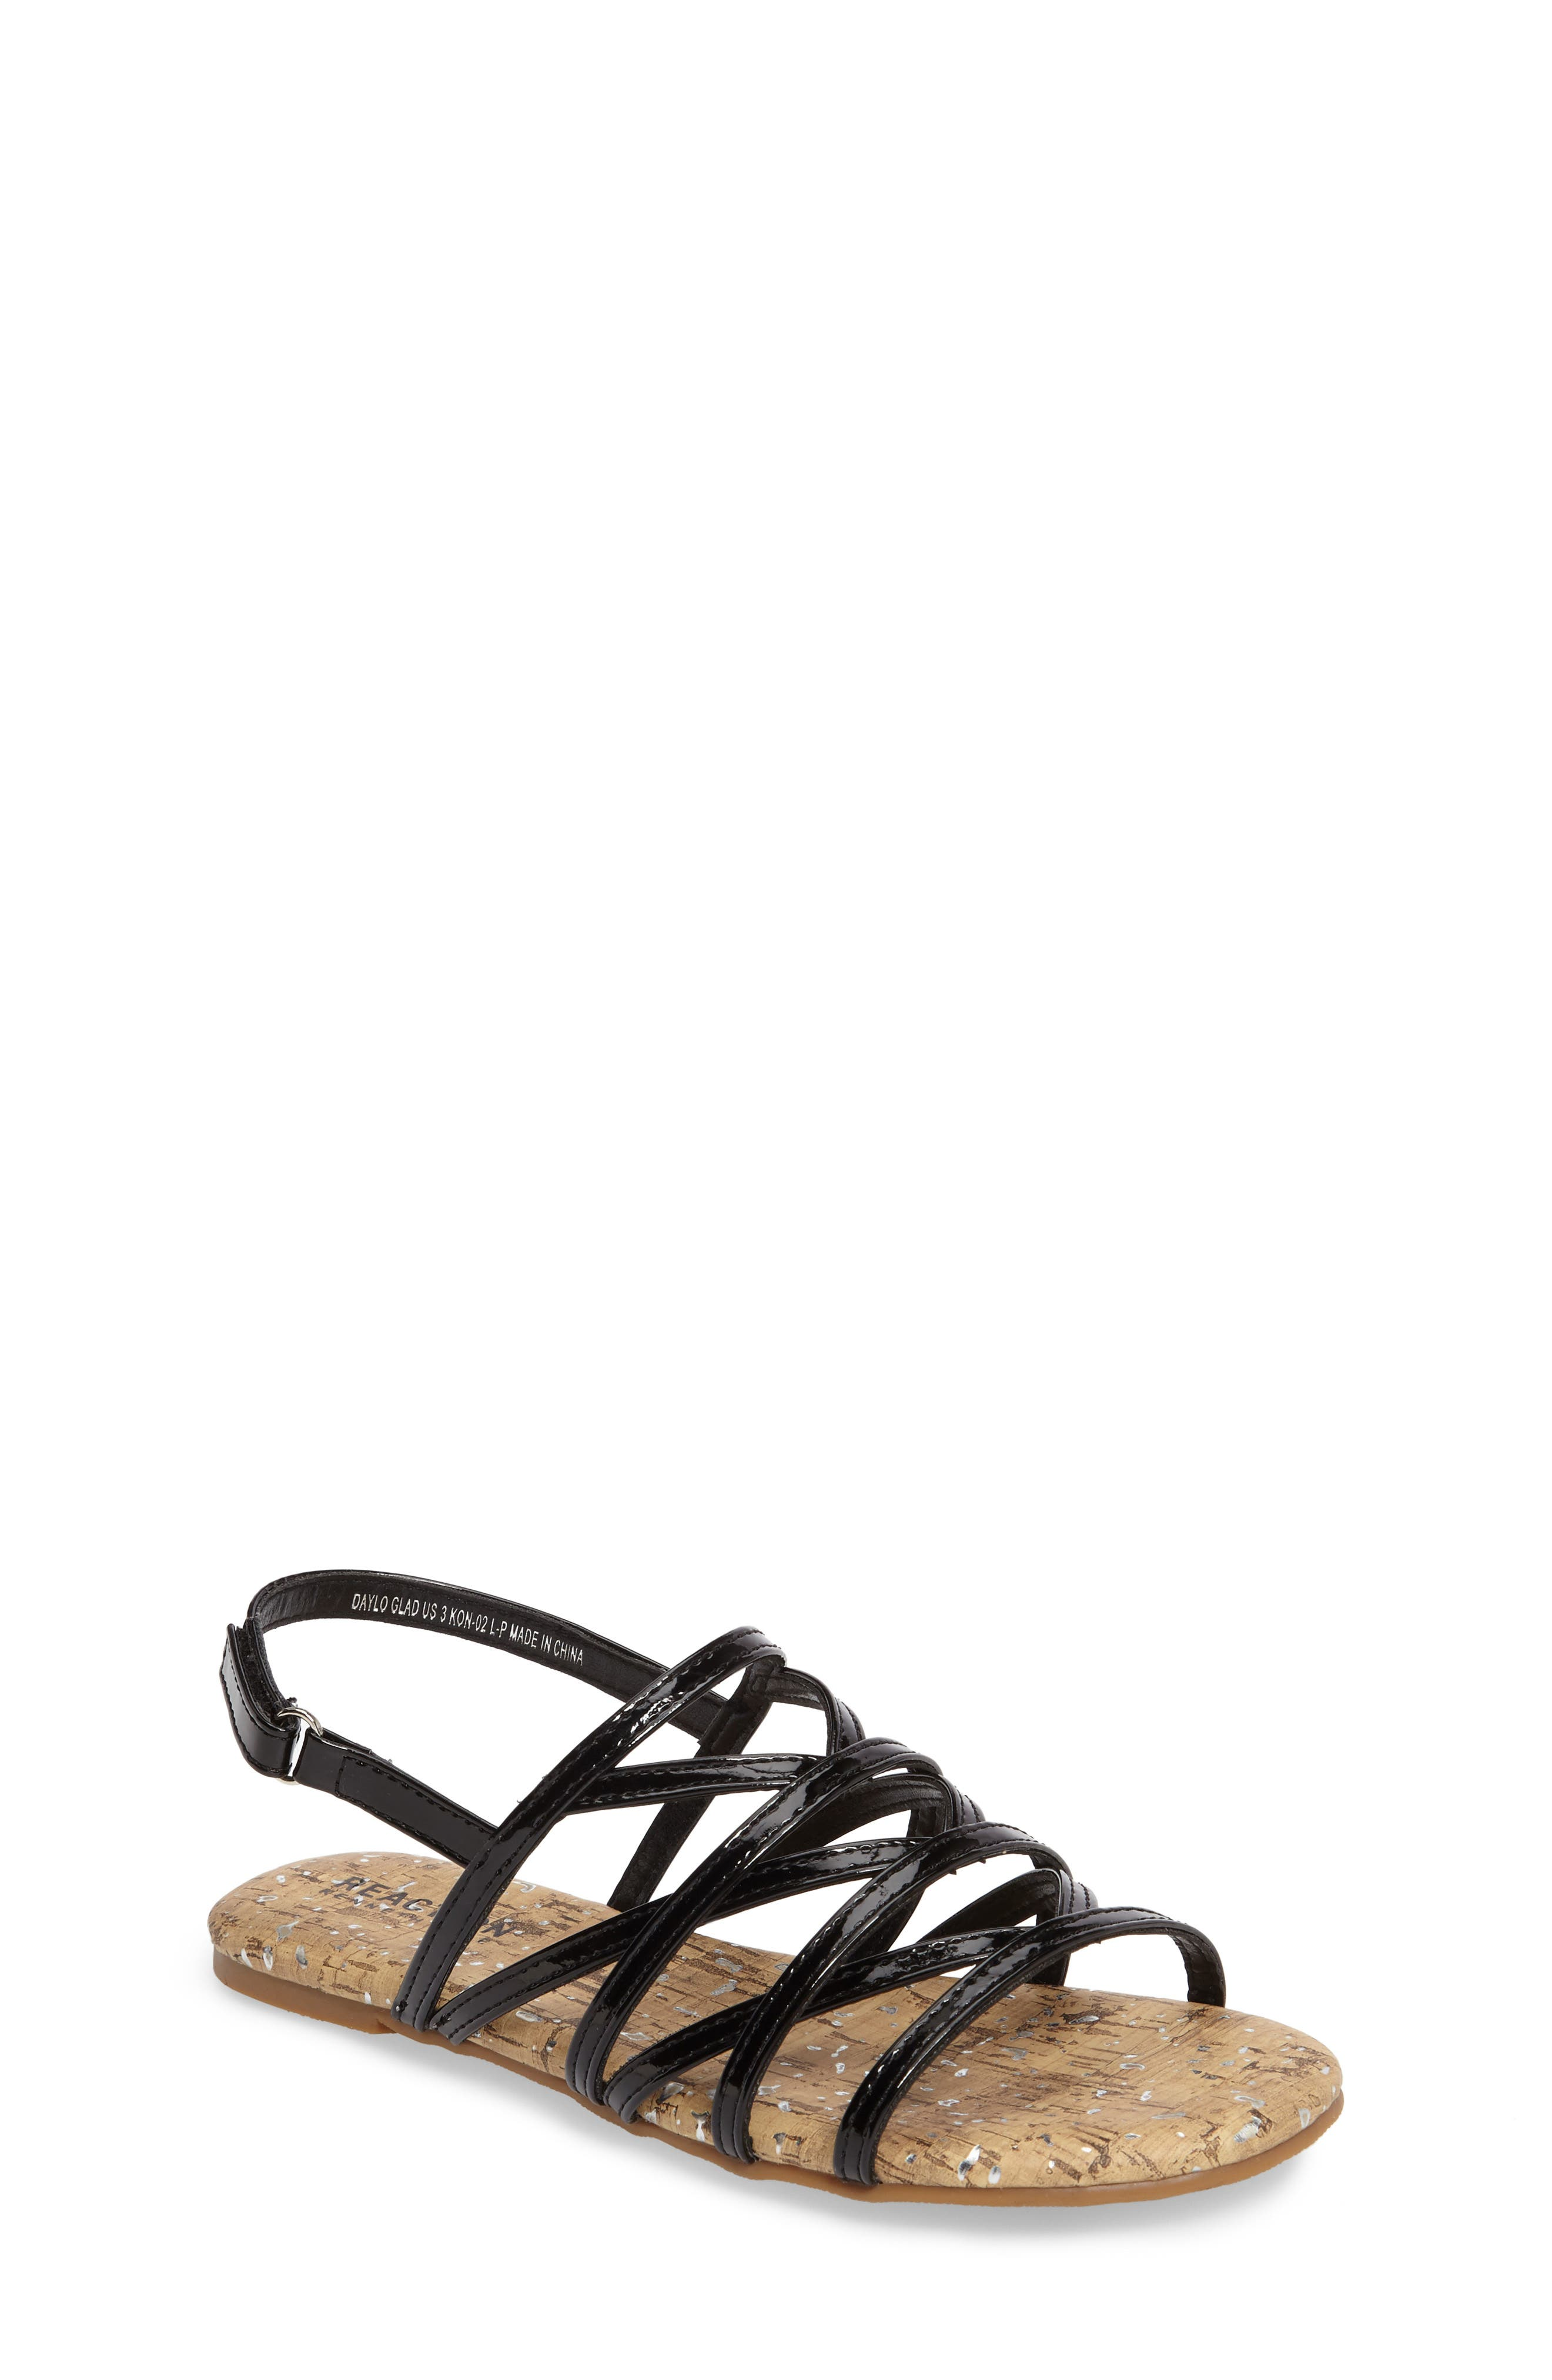 KENNETH COLE NEW YORK Daylo Glad Strappy Sandal